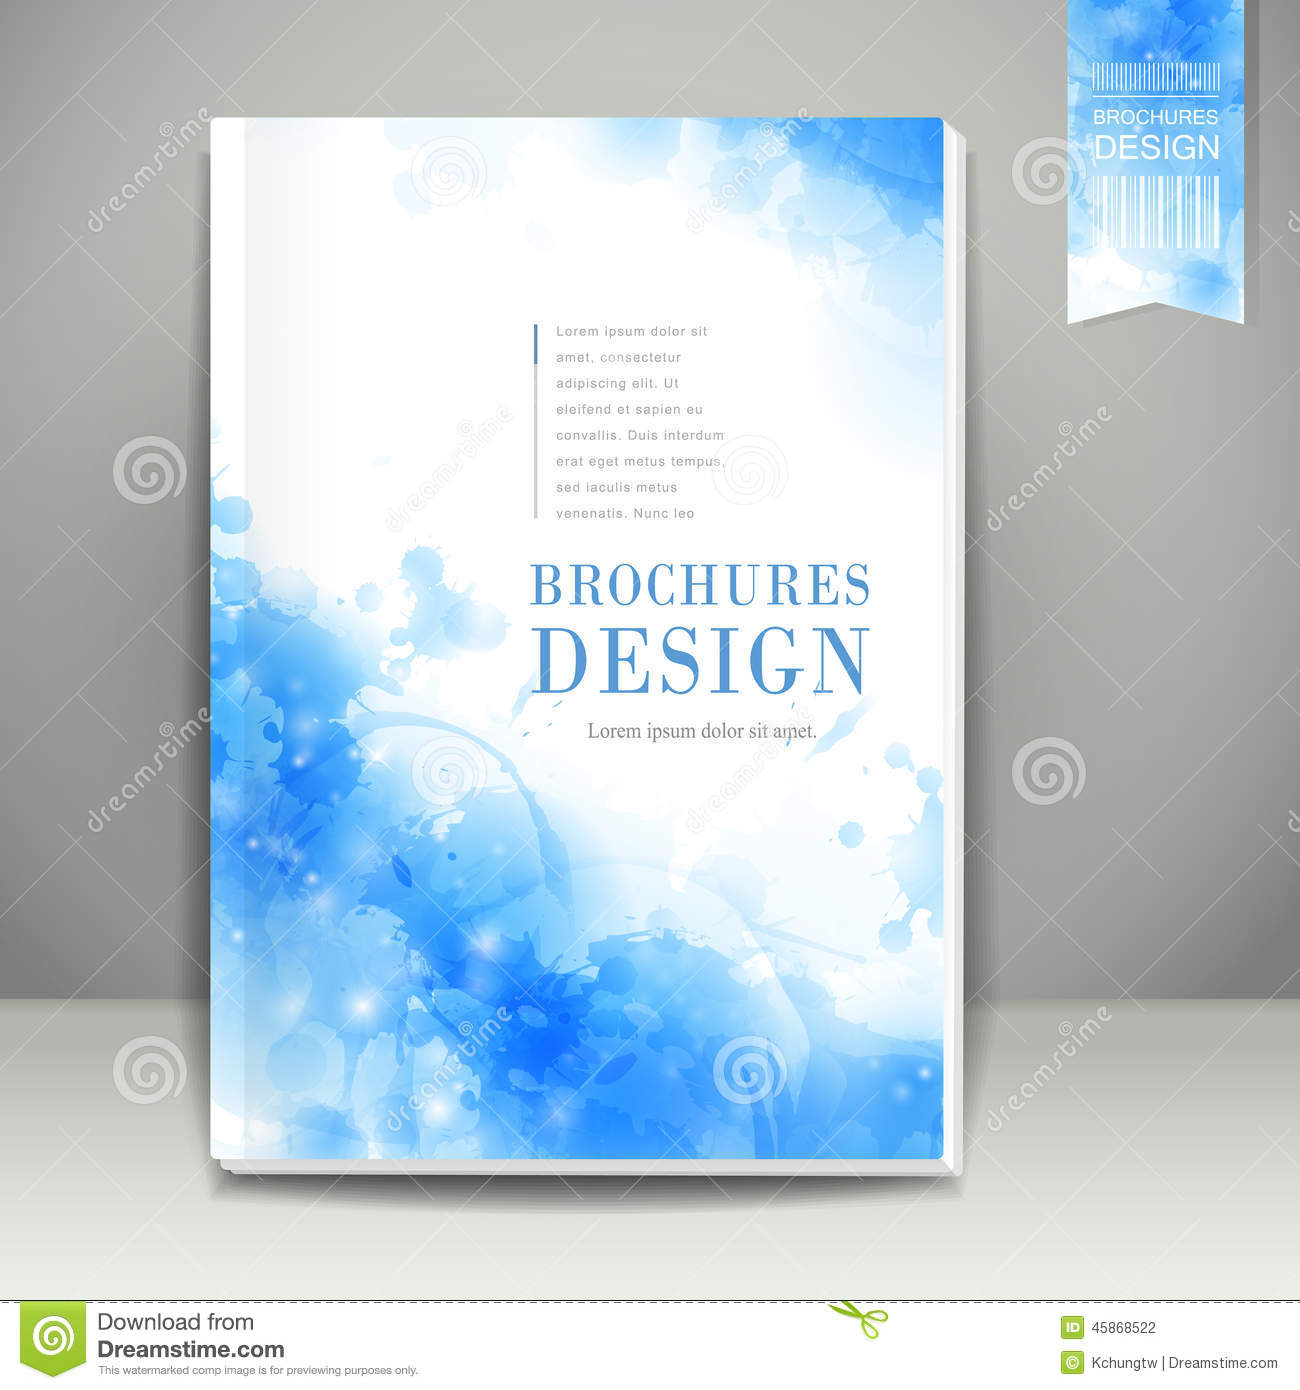 Book Cover Art Styles : Watercolor style background design for book cover stock